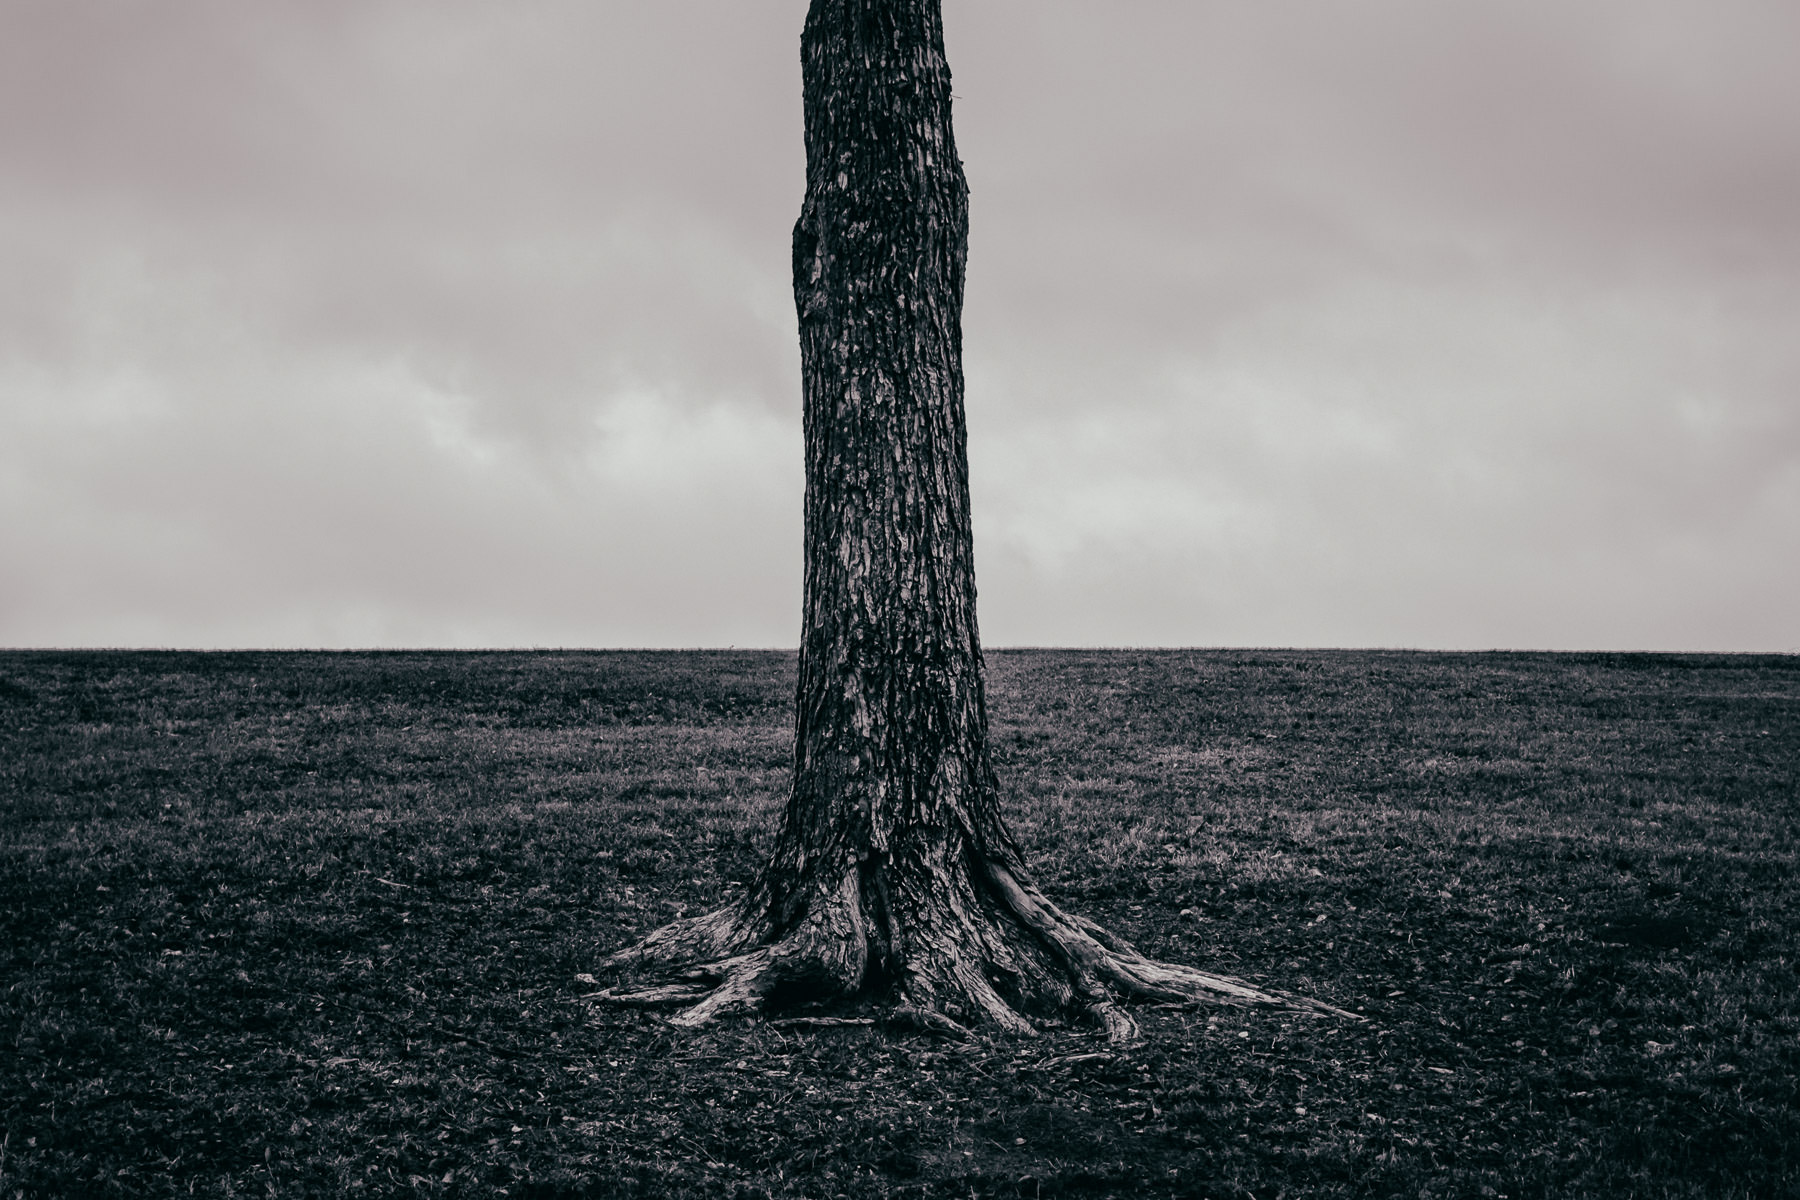 The trunk of a lone tree in Richardson, Texas' Breckinridge Park.